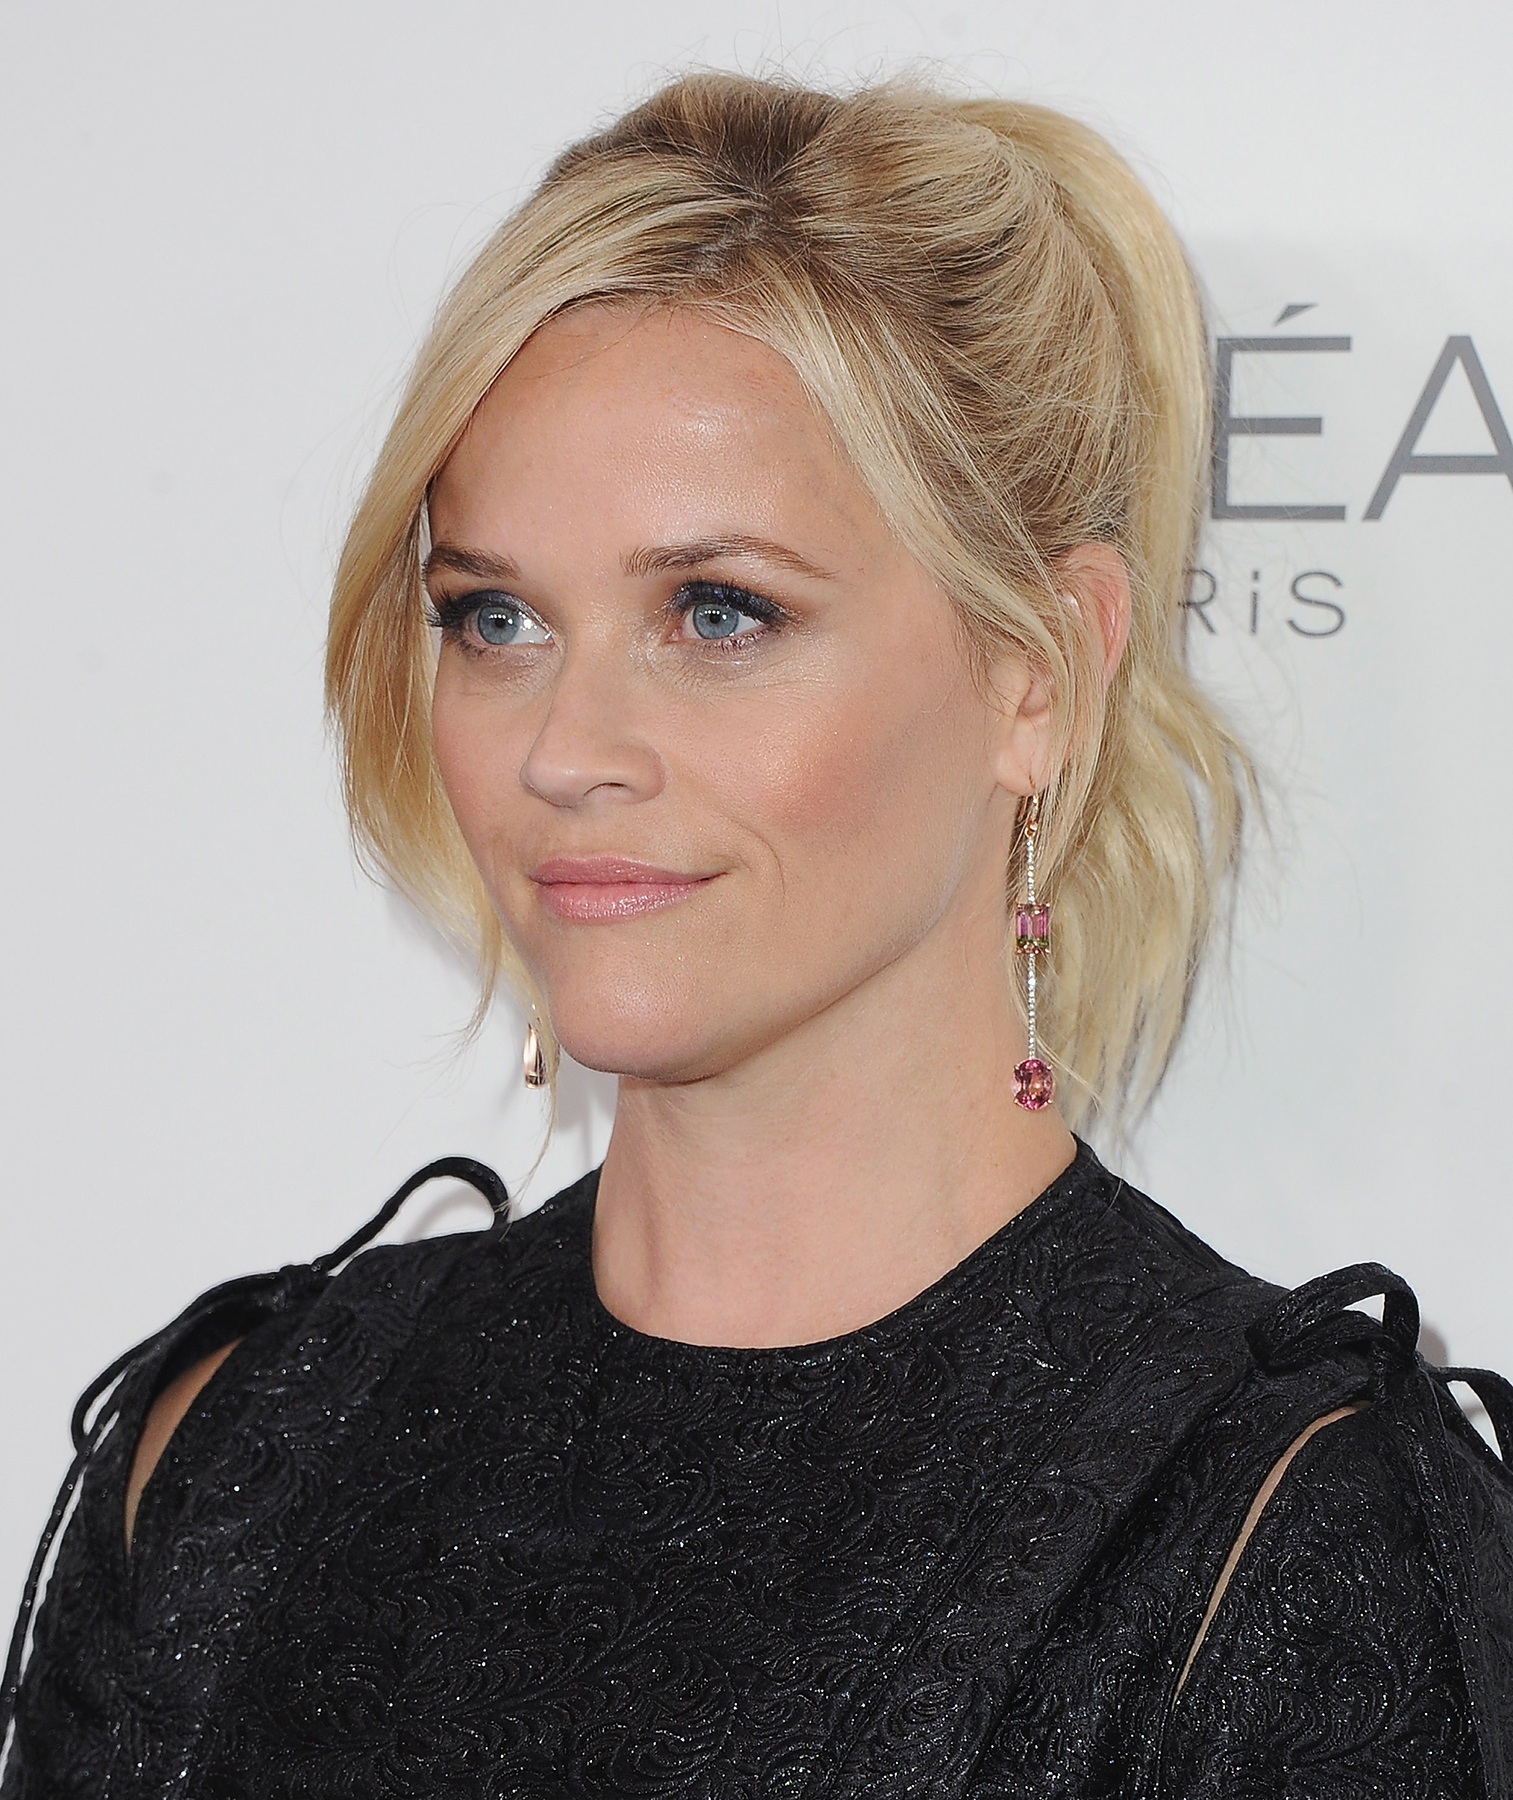 Reese Witherspoon with hair in ponytail